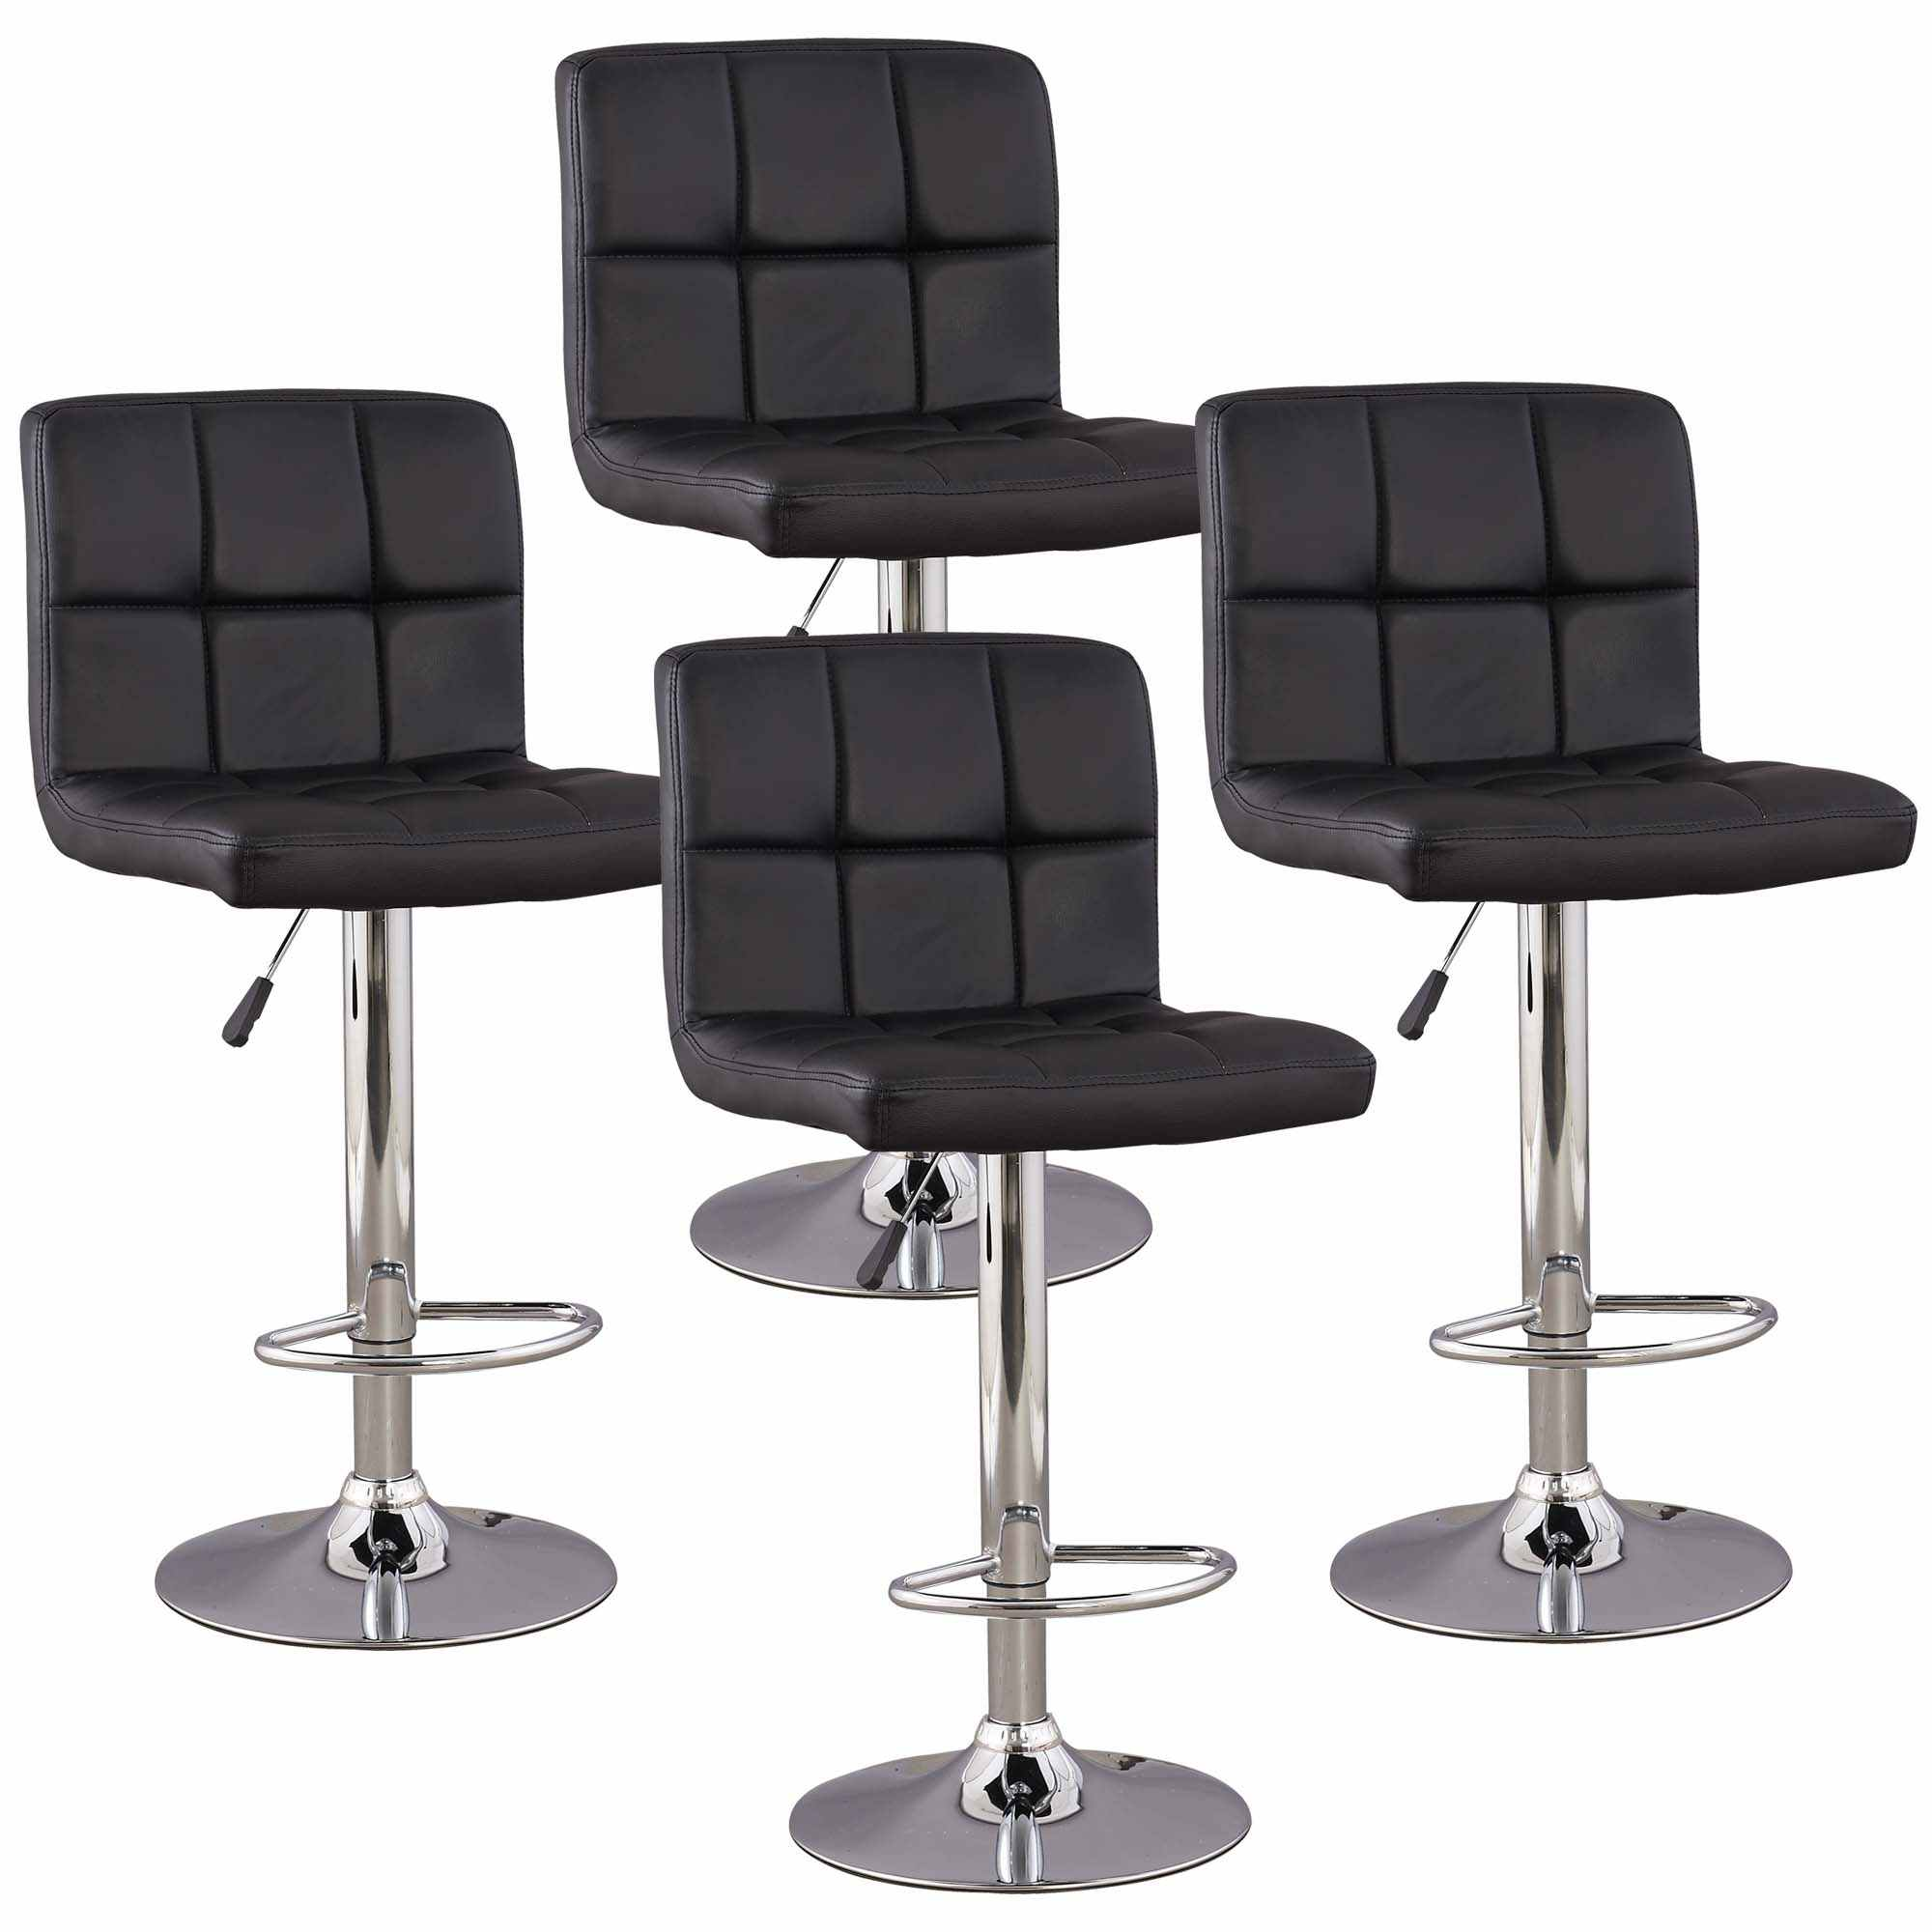 deco in paris lot de 4 tabourets de bar noir scalo scalo tab noir 4. Black Bedroom Furniture Sets. Home Design Ideas